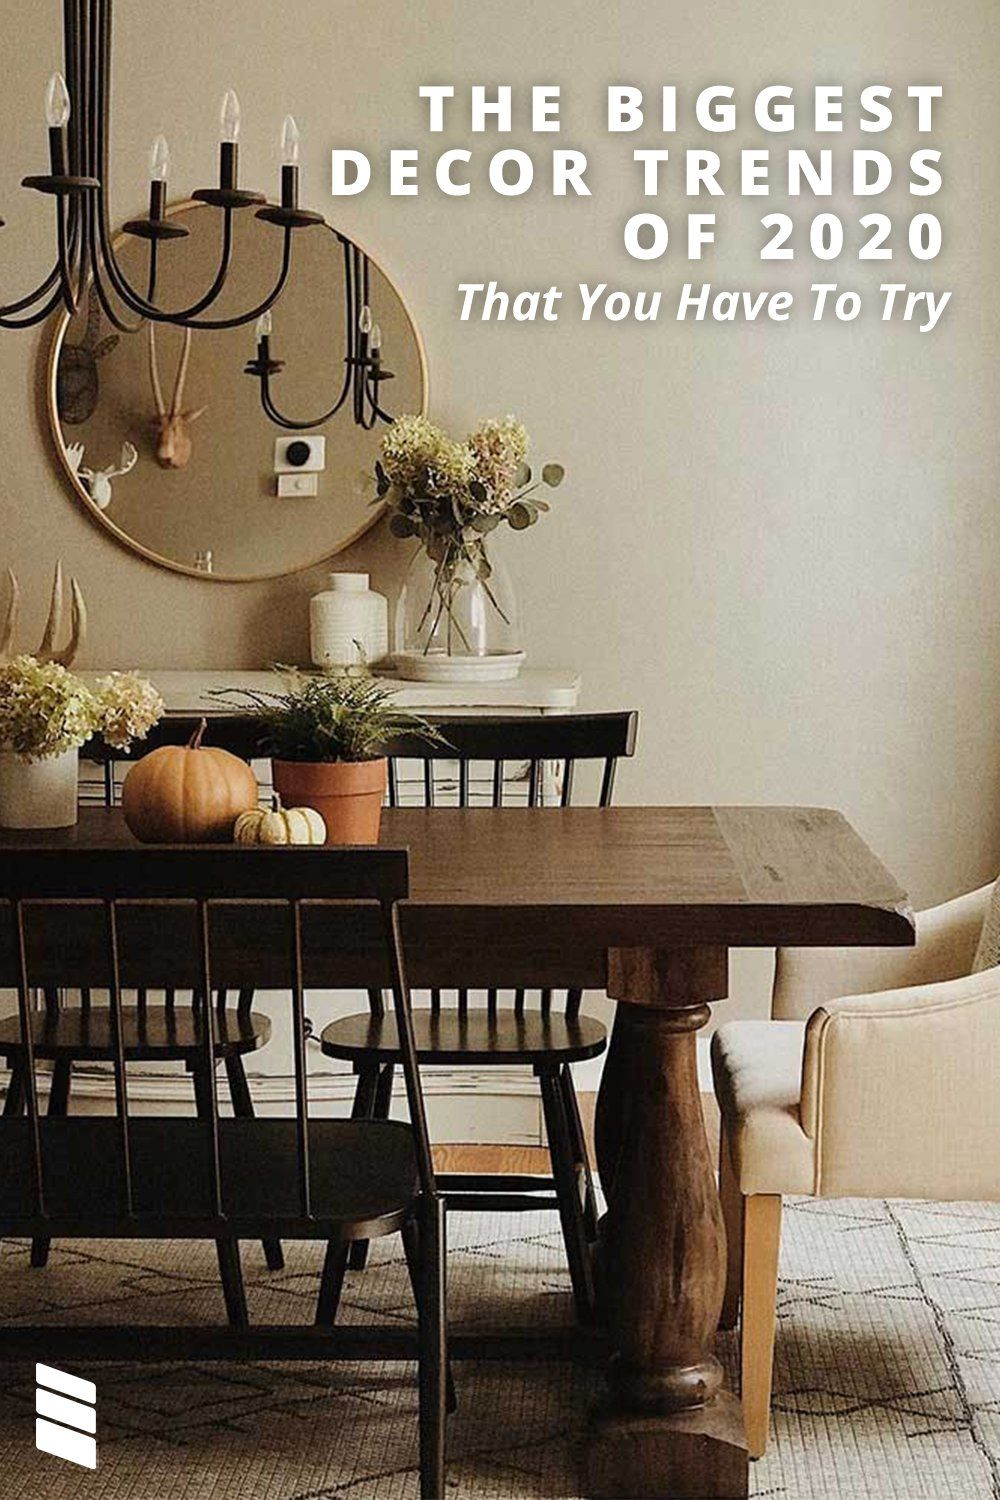 The 9 Biggest Decor Trends To Try In 2020 Blinds Com Fall Dining Room Table Trending Decor Fall Dining Room